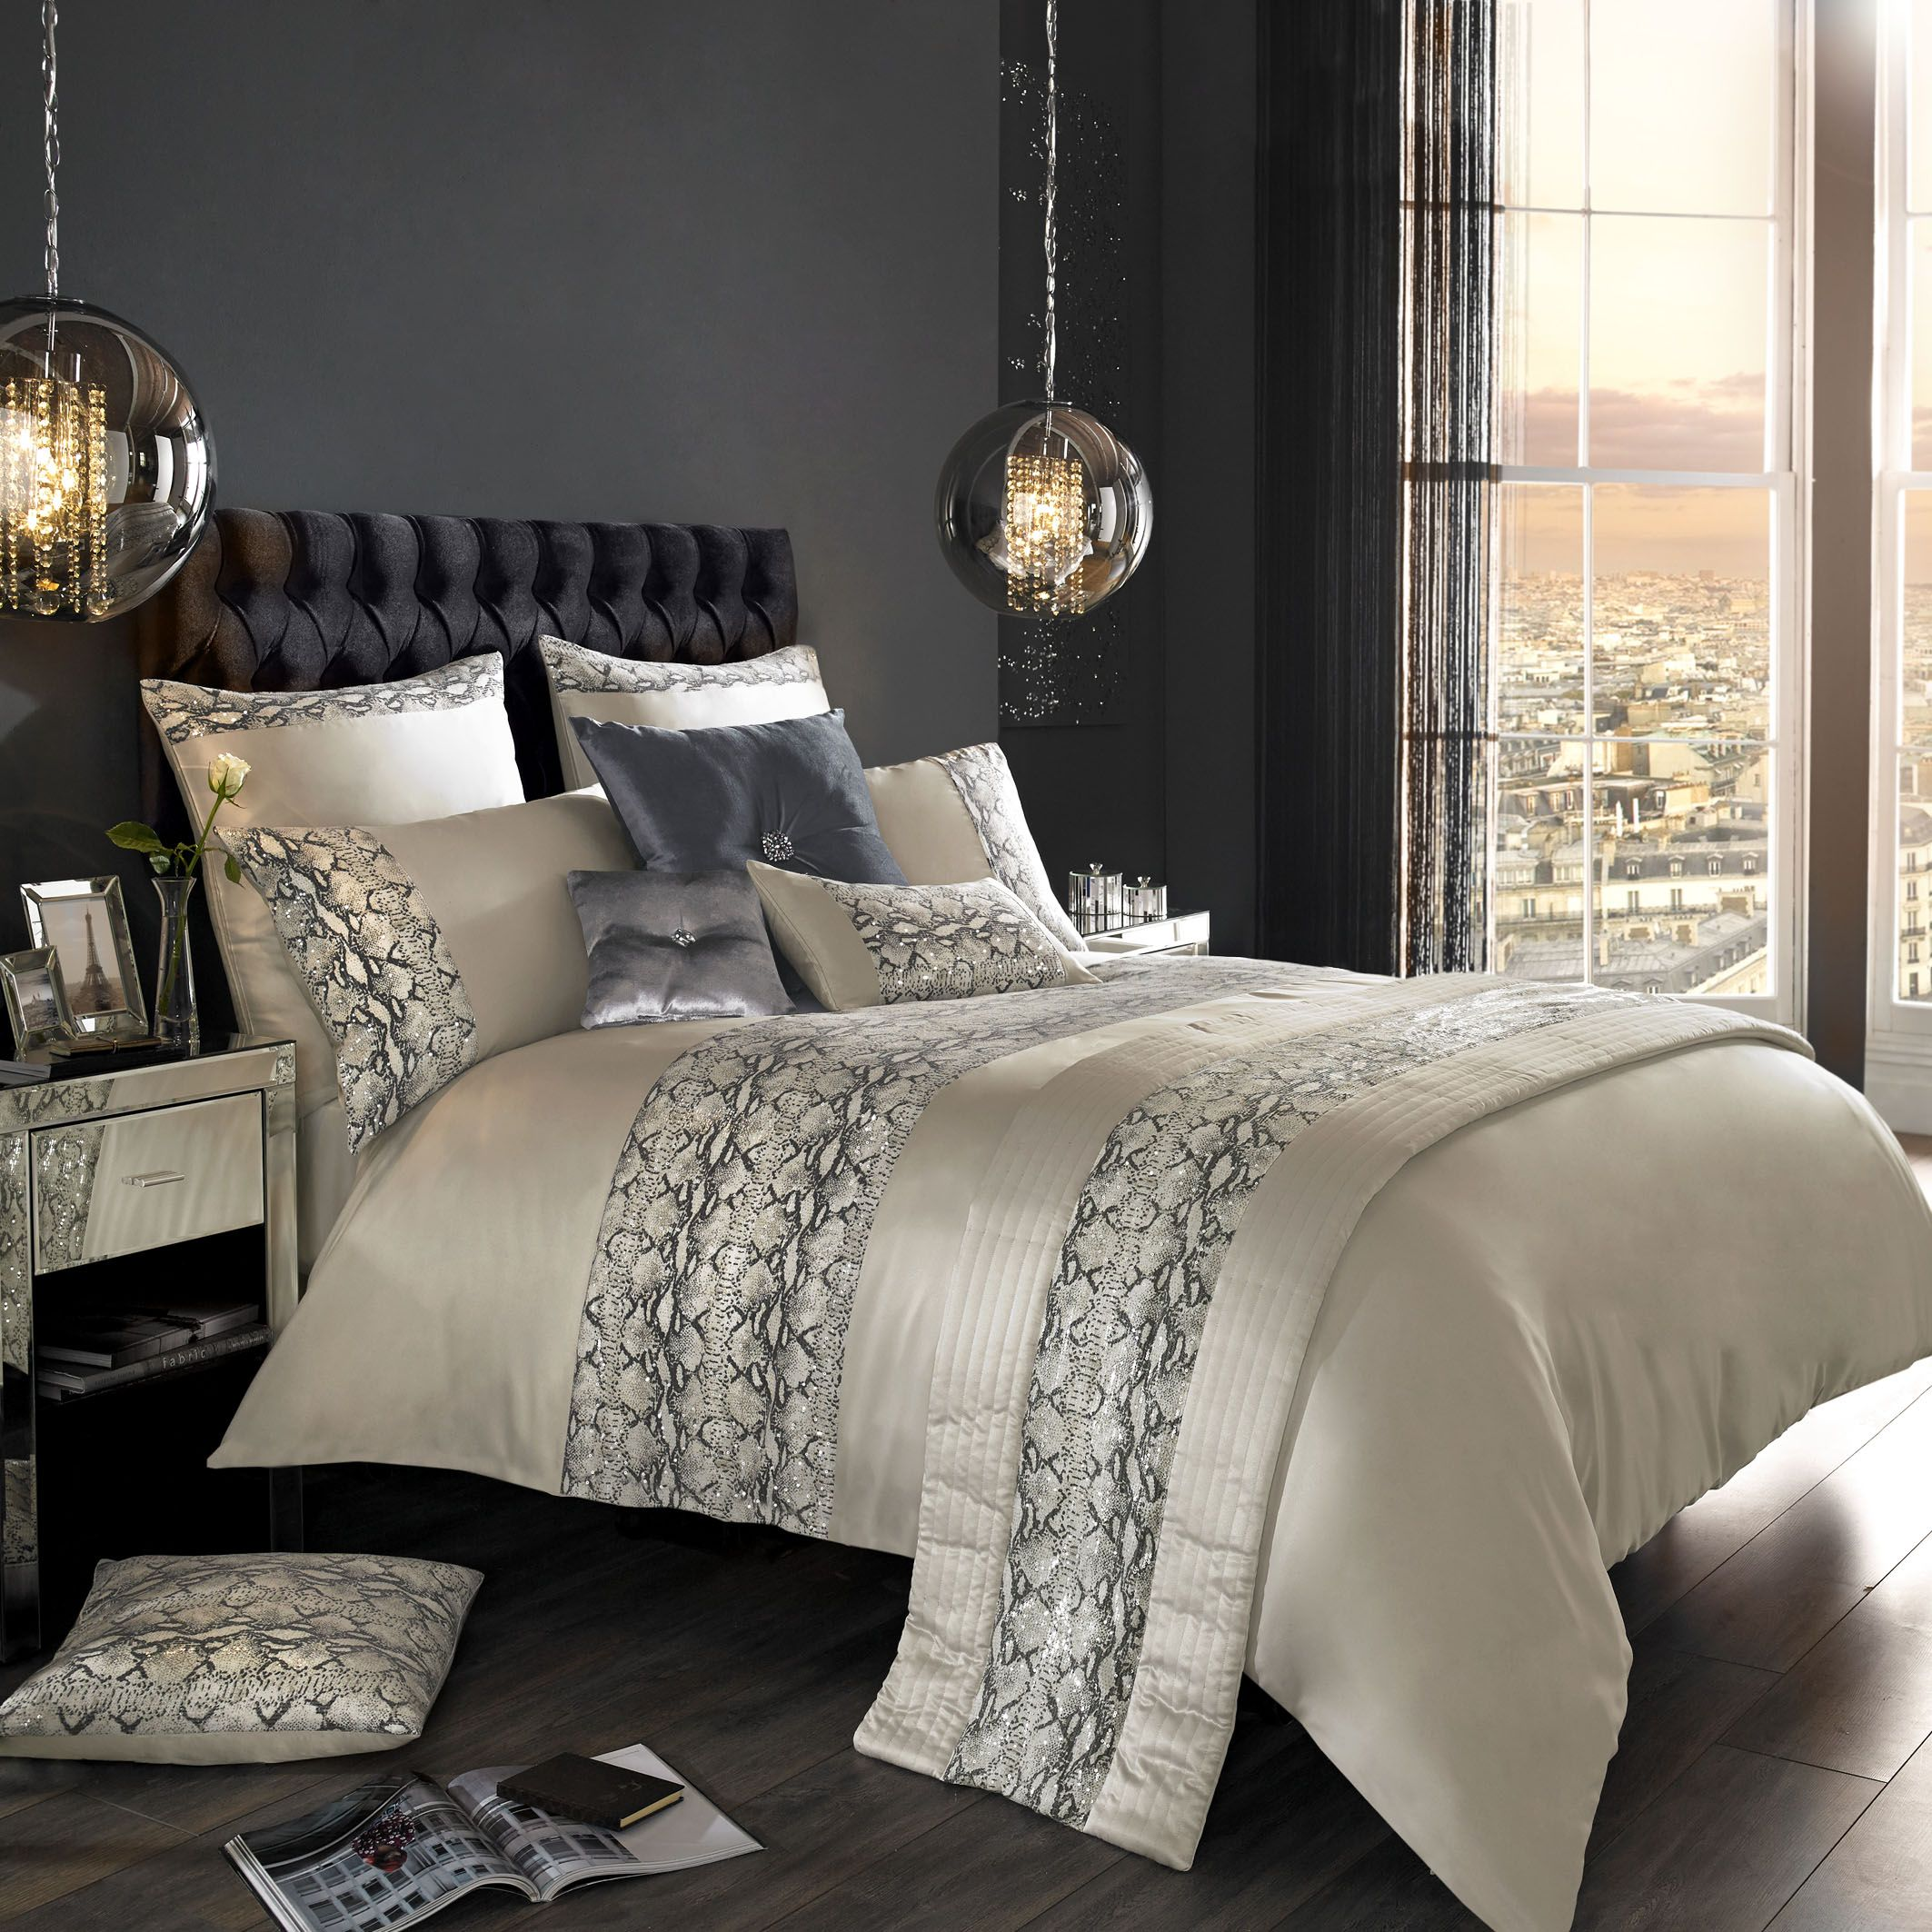 Brand New Kylie Minogue Adira Bedding From 16 20 Cheap On Line